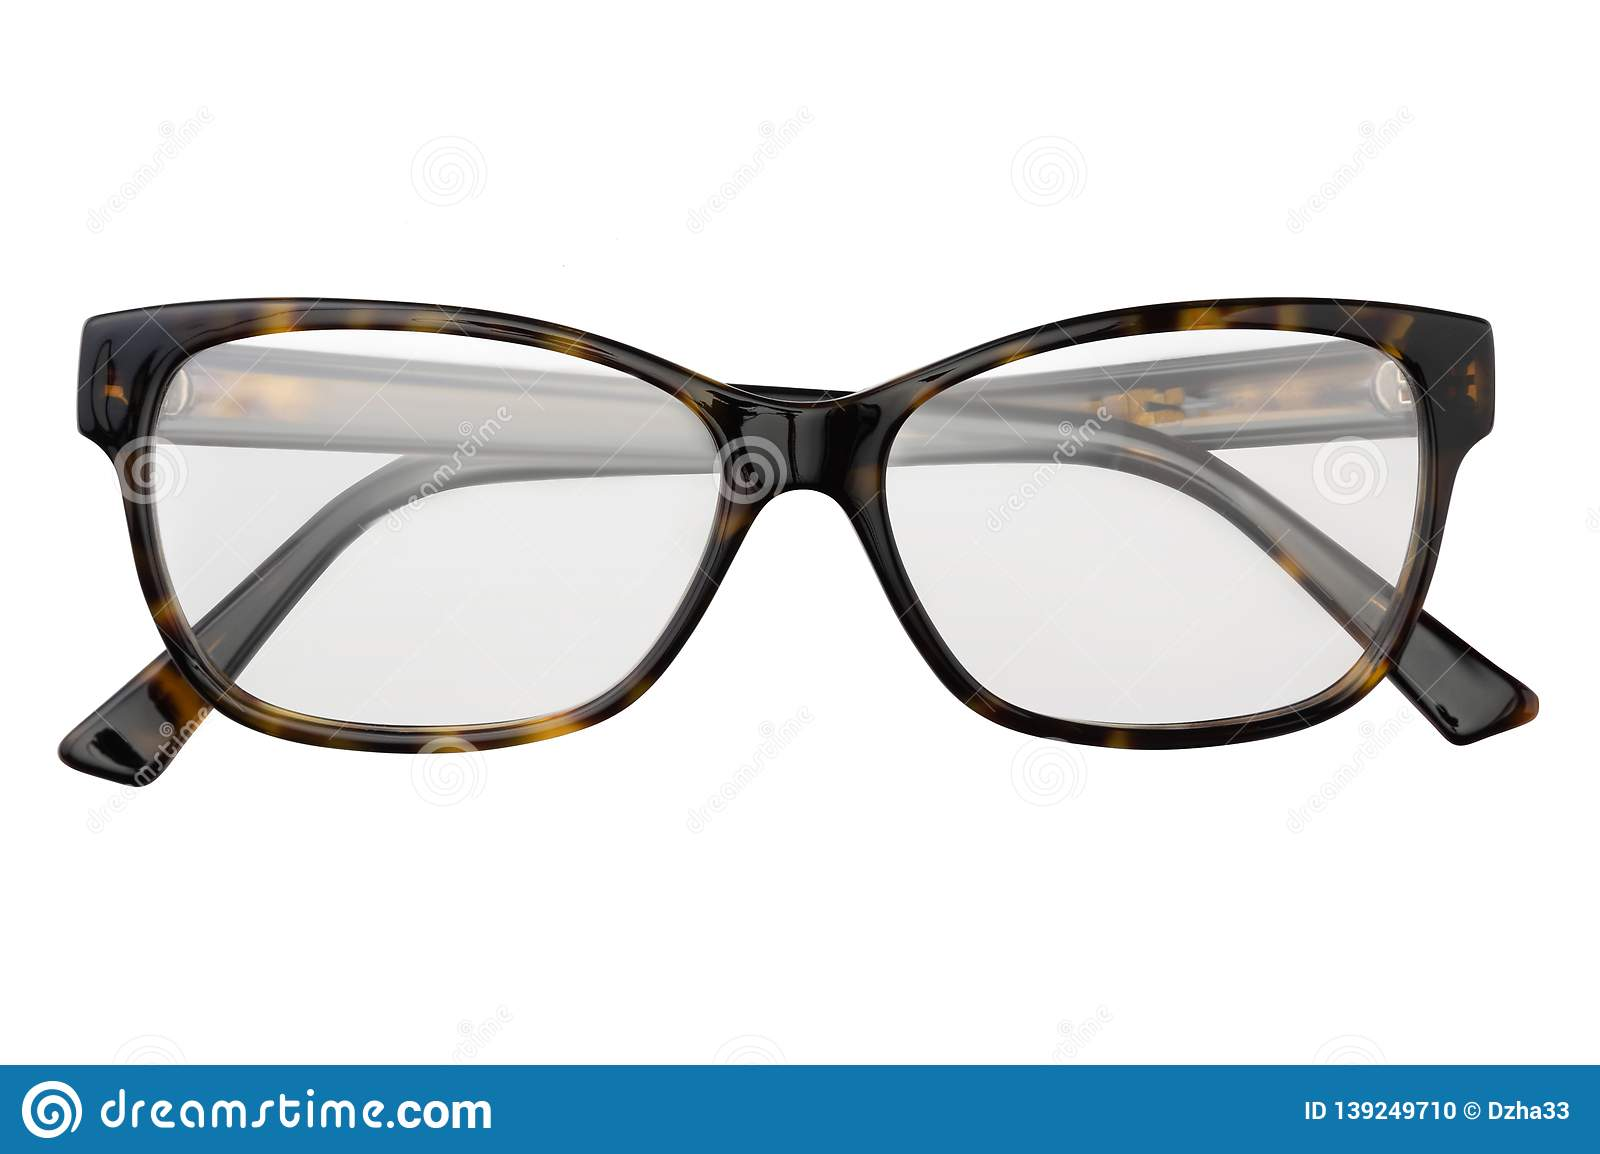 e0c0b89df3ea Black and yellow glasses in rectangular frame transparent for reading or good  eye sight